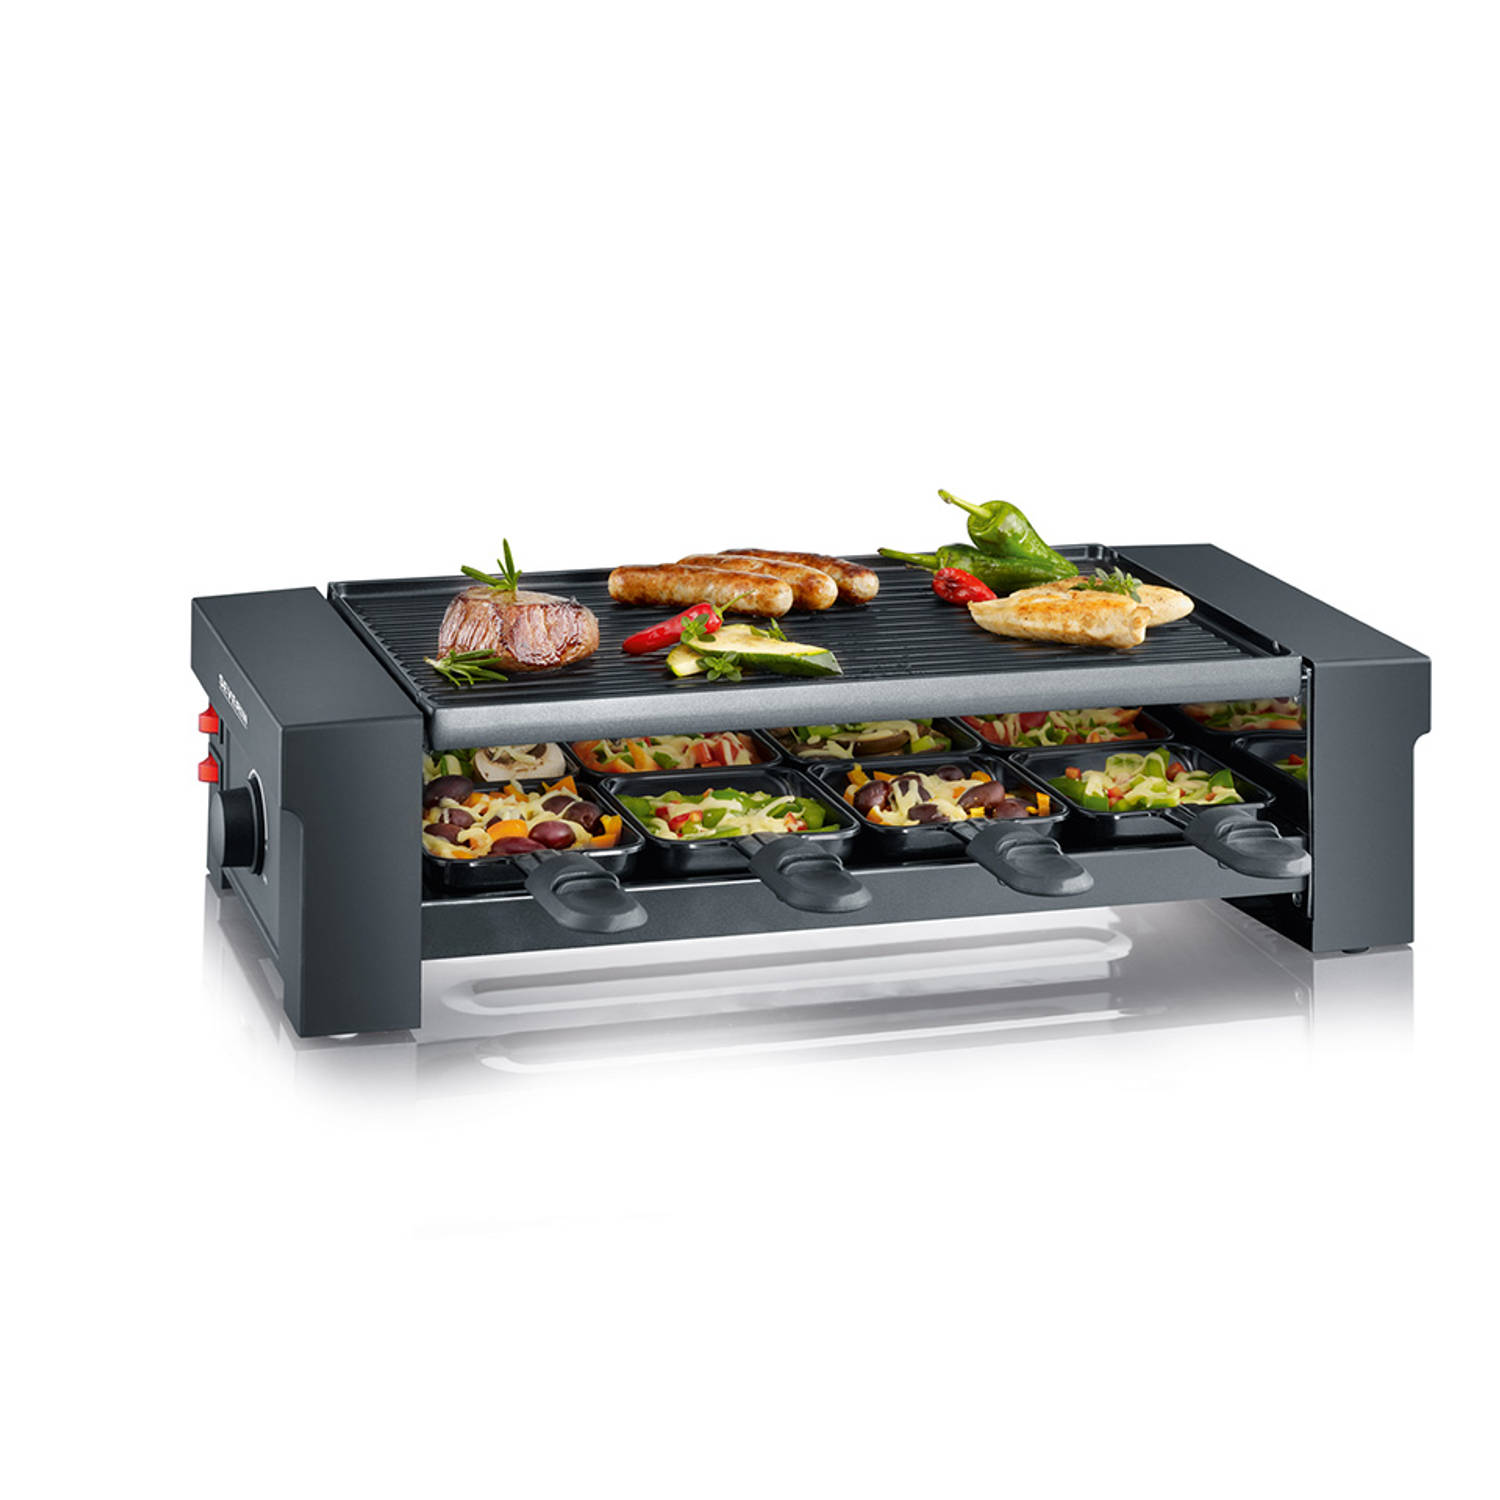 Severin Raclette grill RG 2687